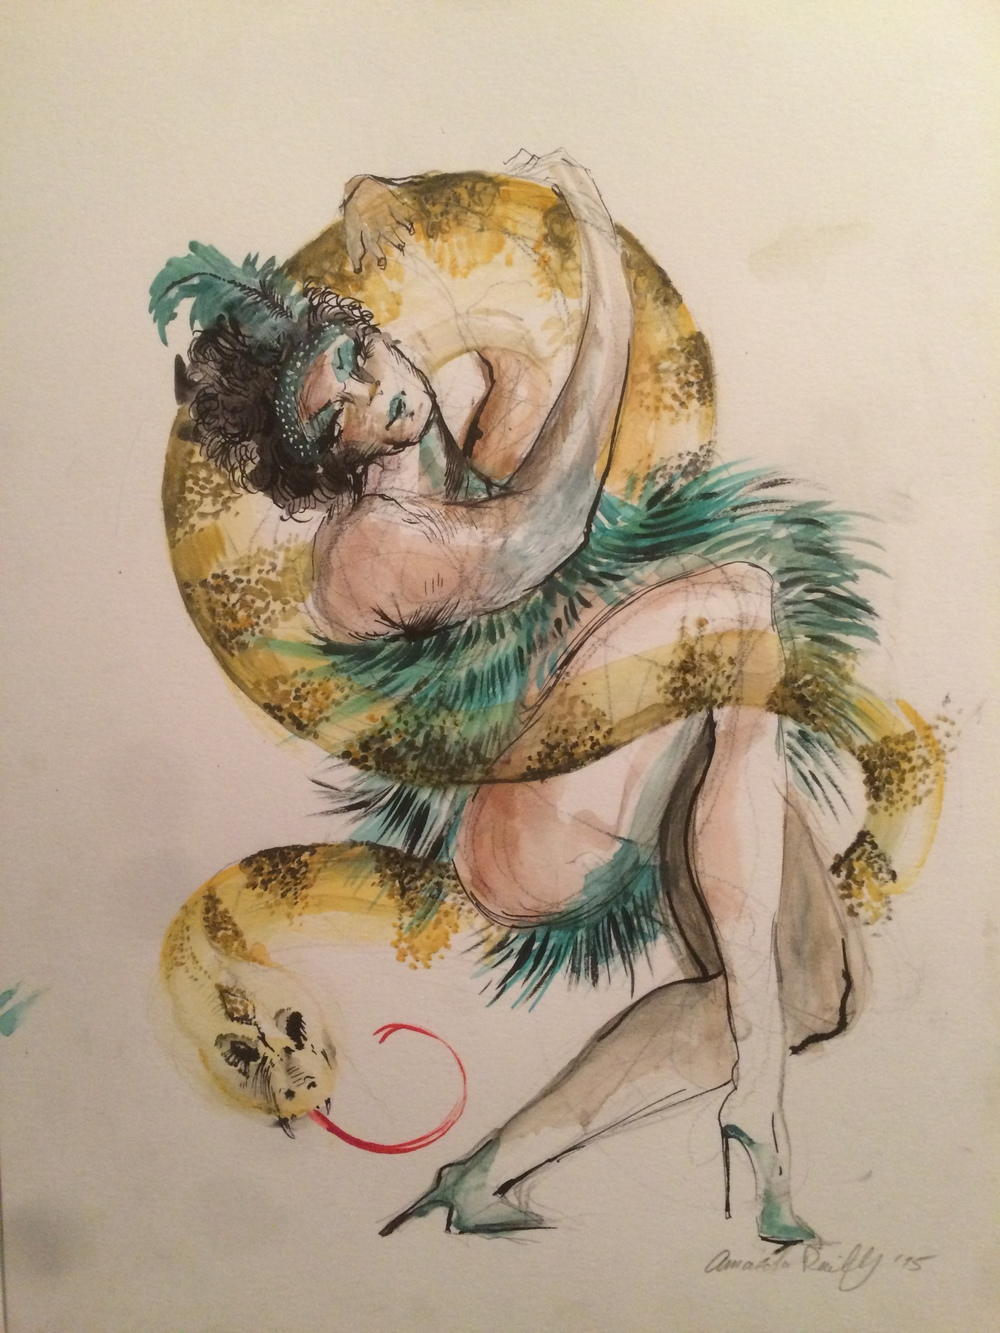 Princess Pat dancing with her beautiful snake at the Sideshow!  (Available For Purchase)